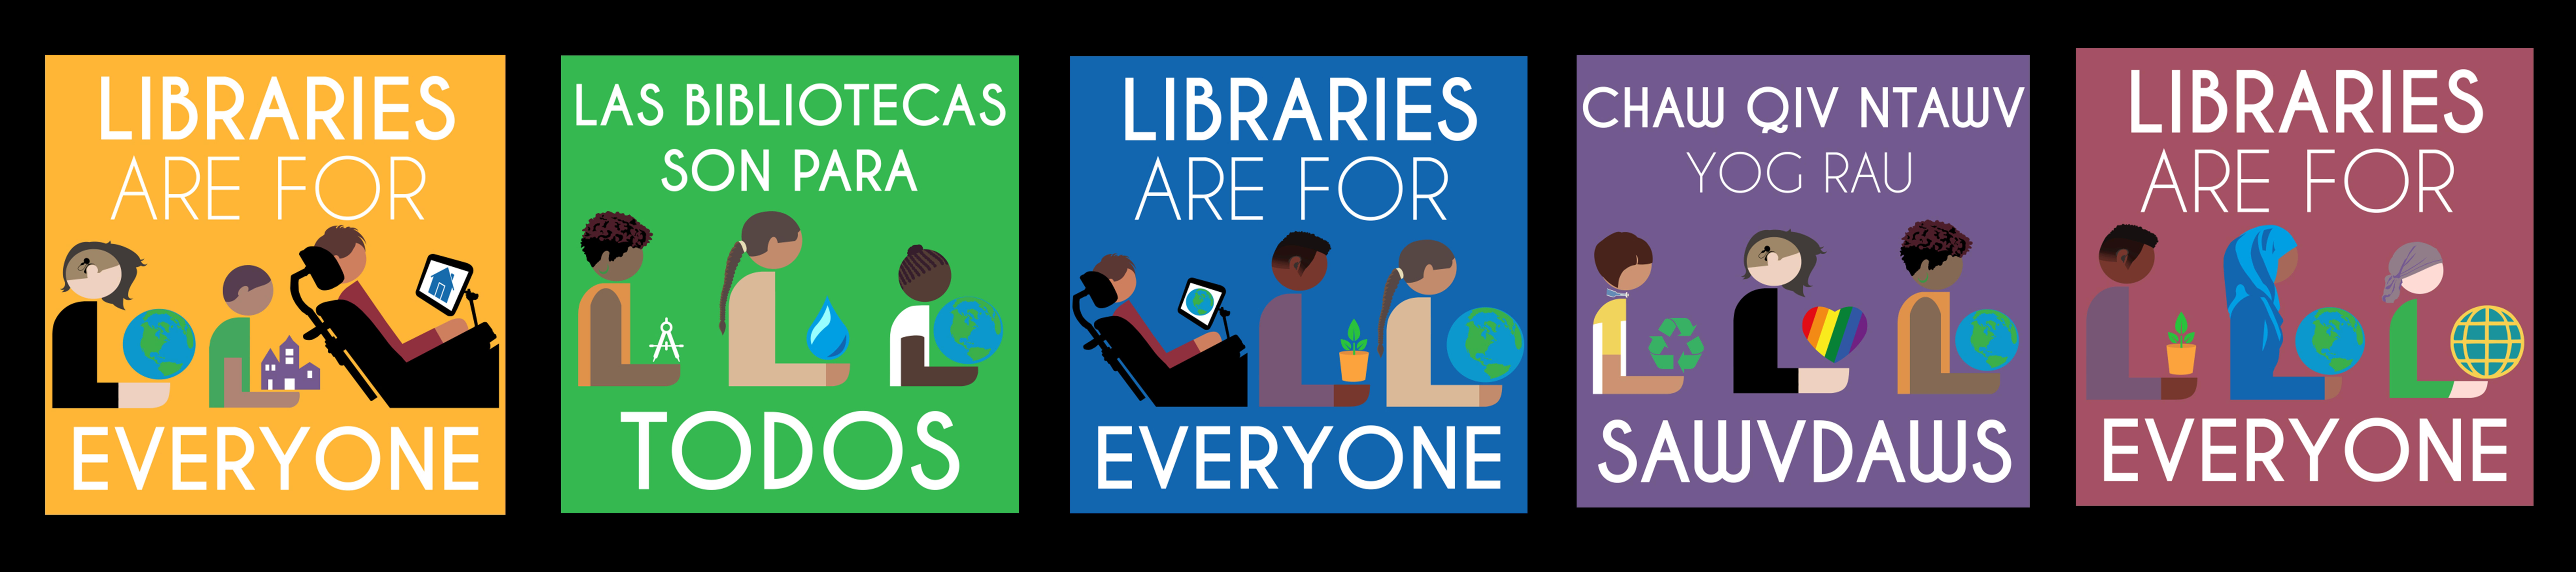 Libraries are for everyone banner